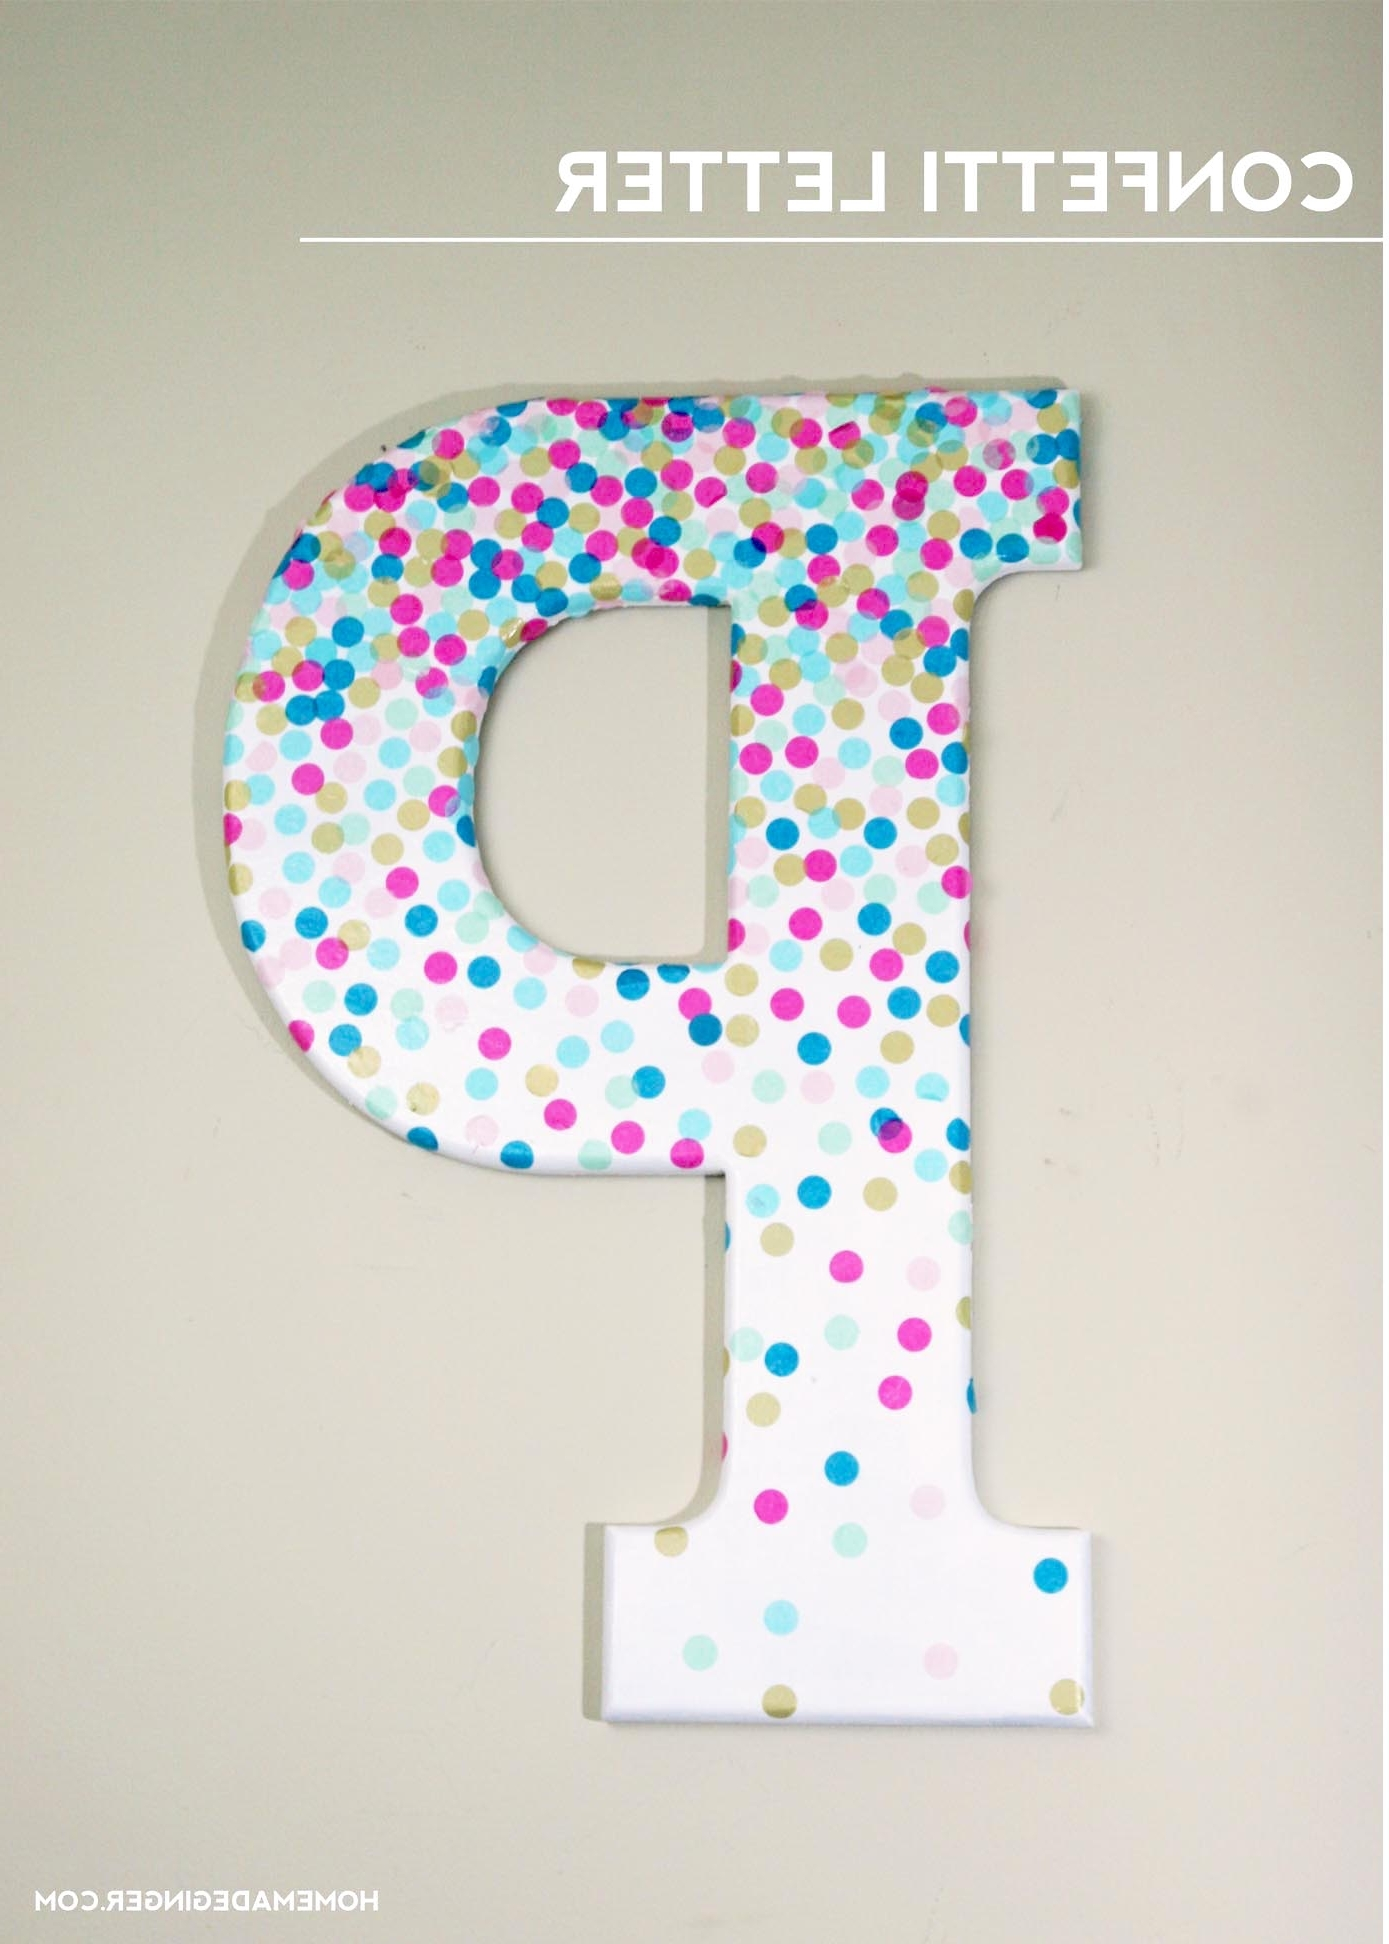 Letter Wall Art Pertaining To Latest Diy Wall Art: Confetti Letter – Homemade Ginger (View 6 of 15)